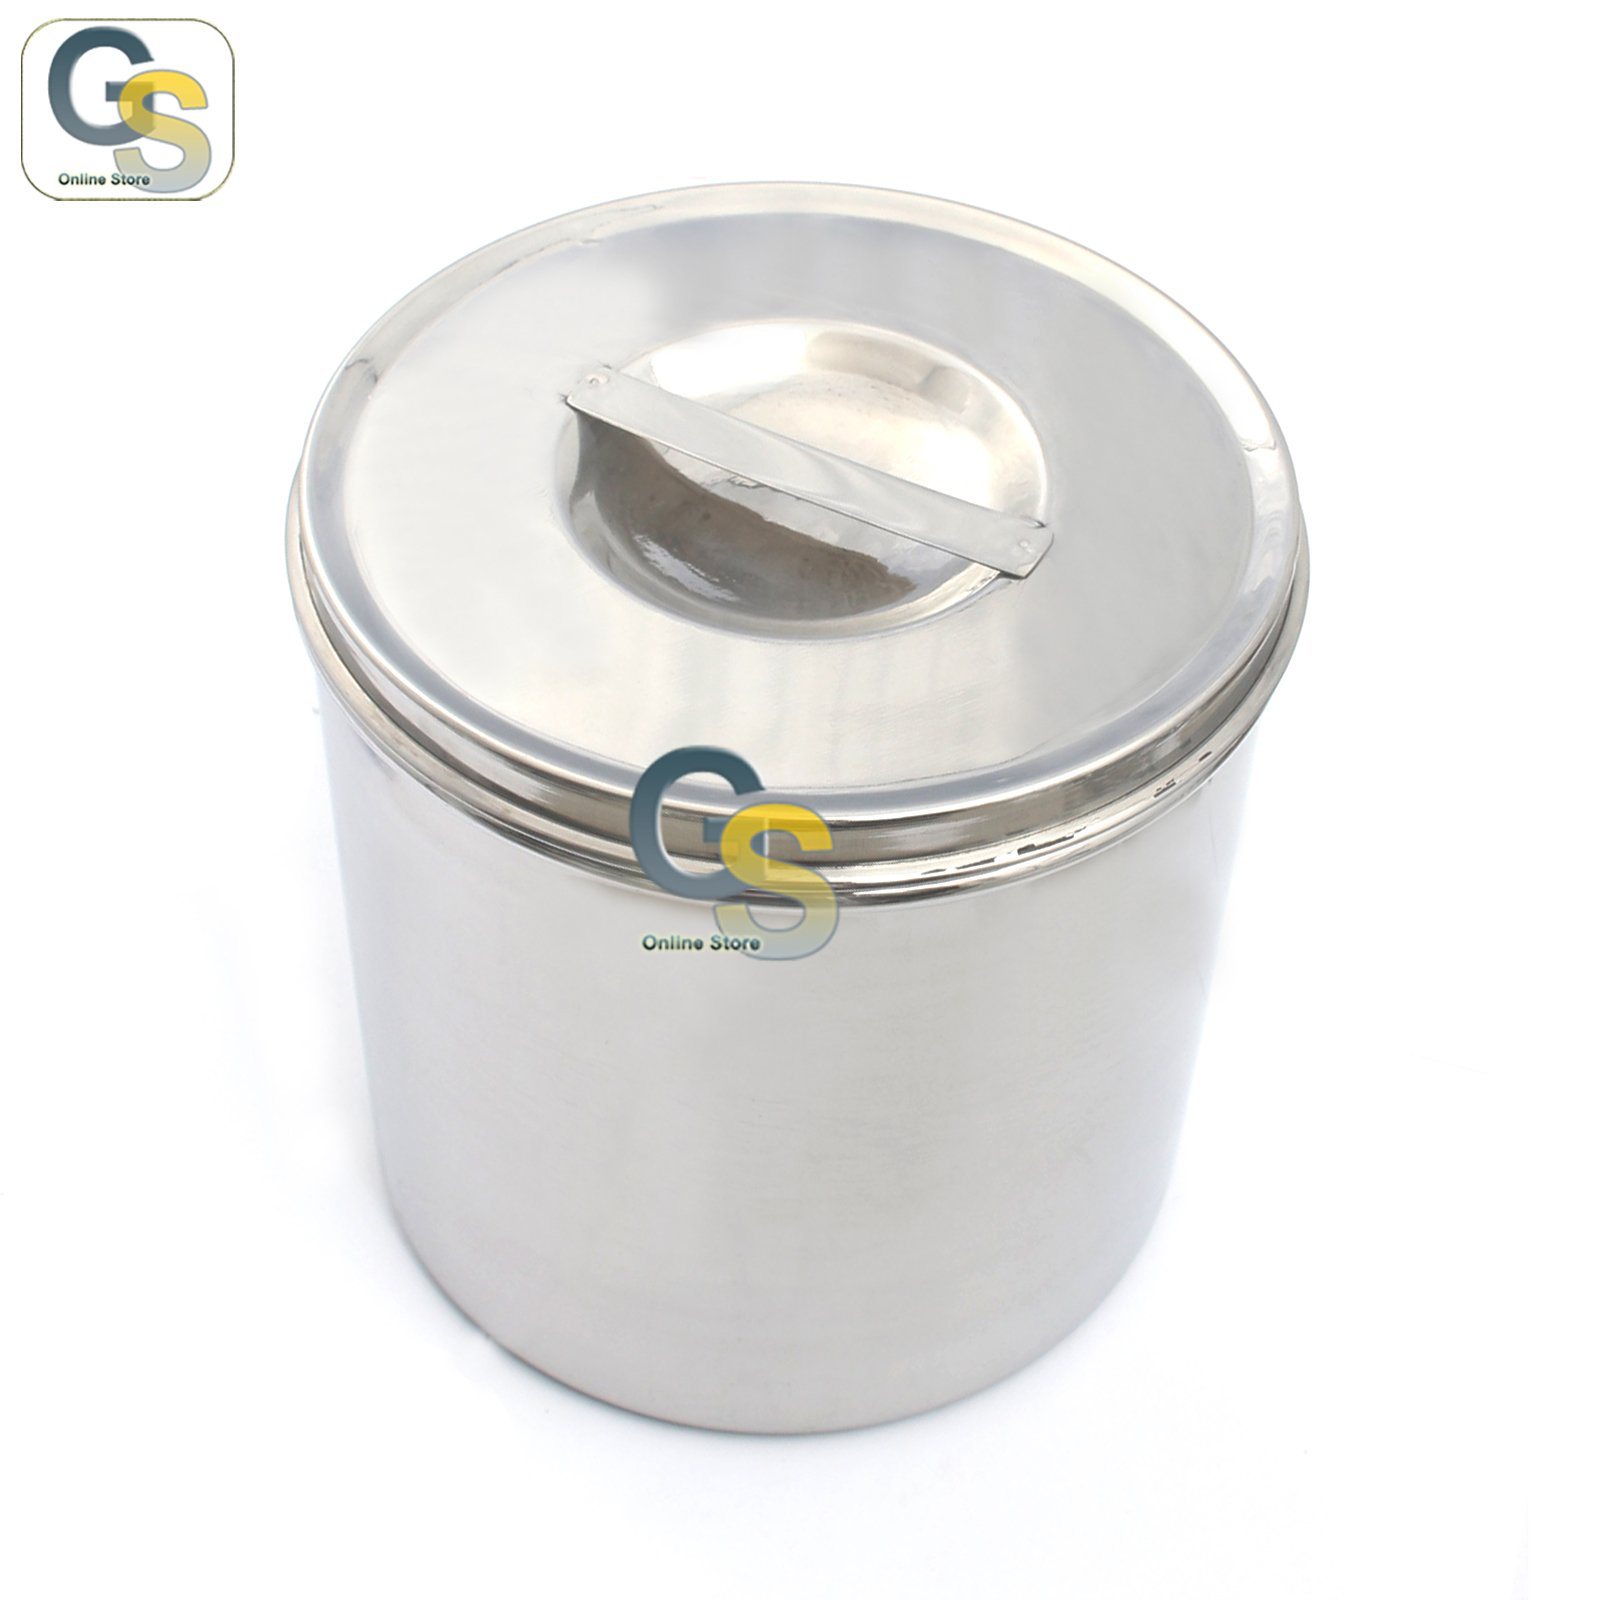 G.S STAINLESS STEEL DRESSING JAR BEST QUALITY